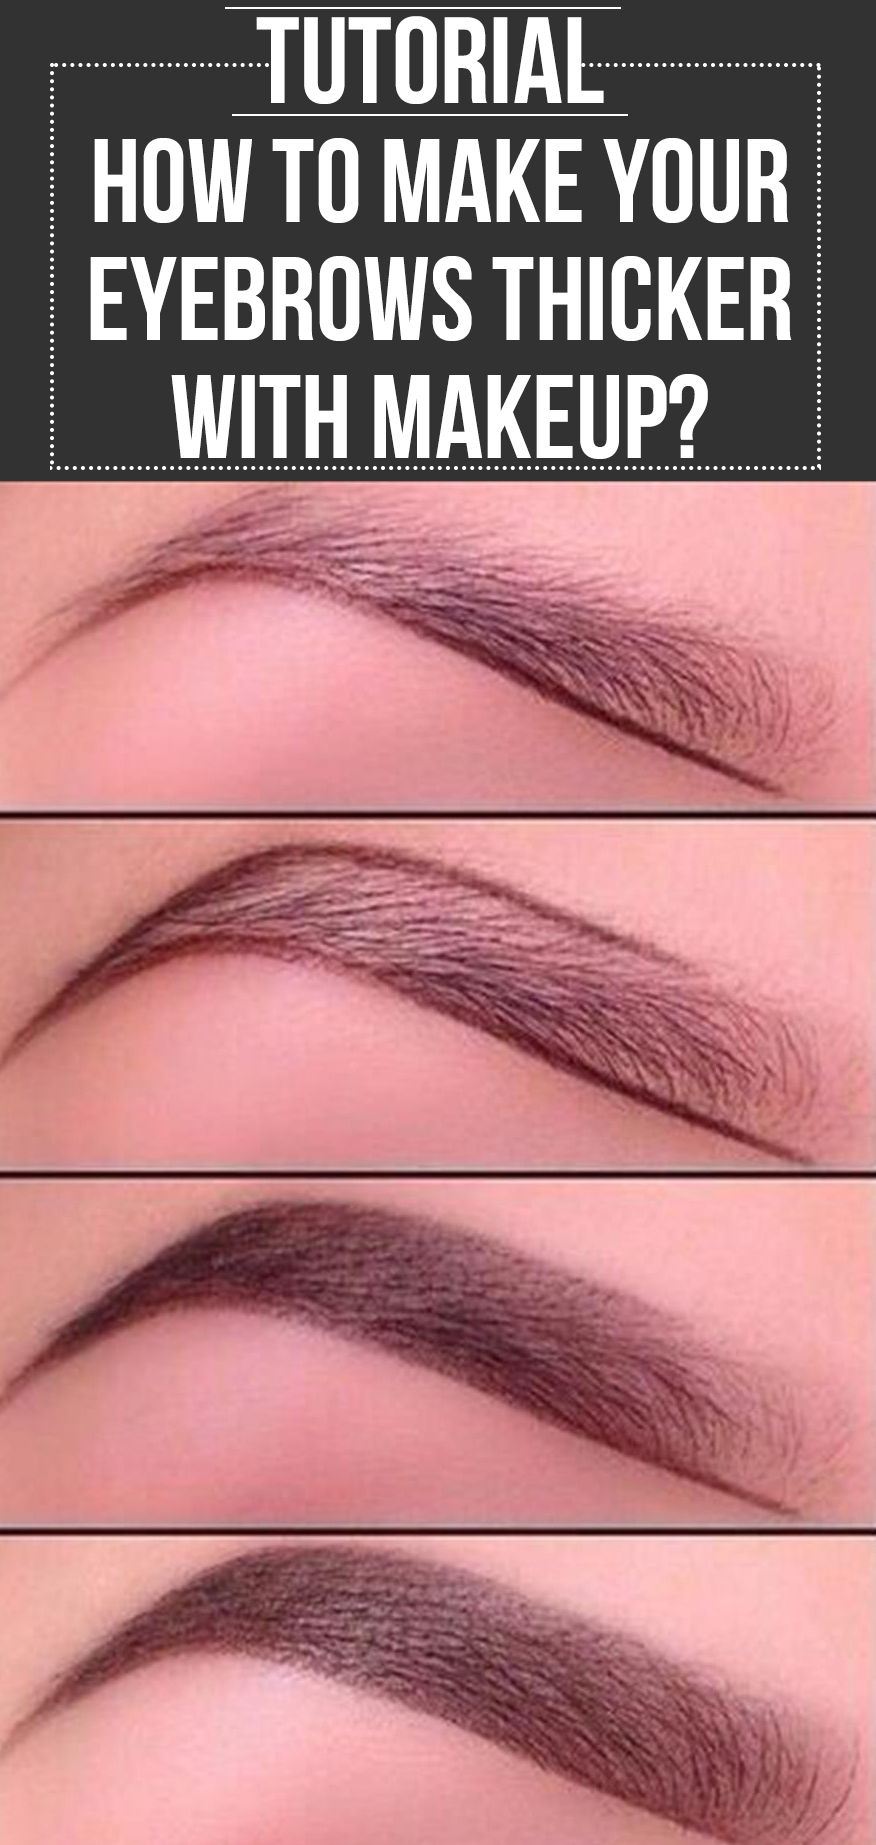 Eyes Influence The Way We Look Grooming Them A Little Enhances Looks Here Is Tutorial On How To Make Eyebrows Thicker With Makeup